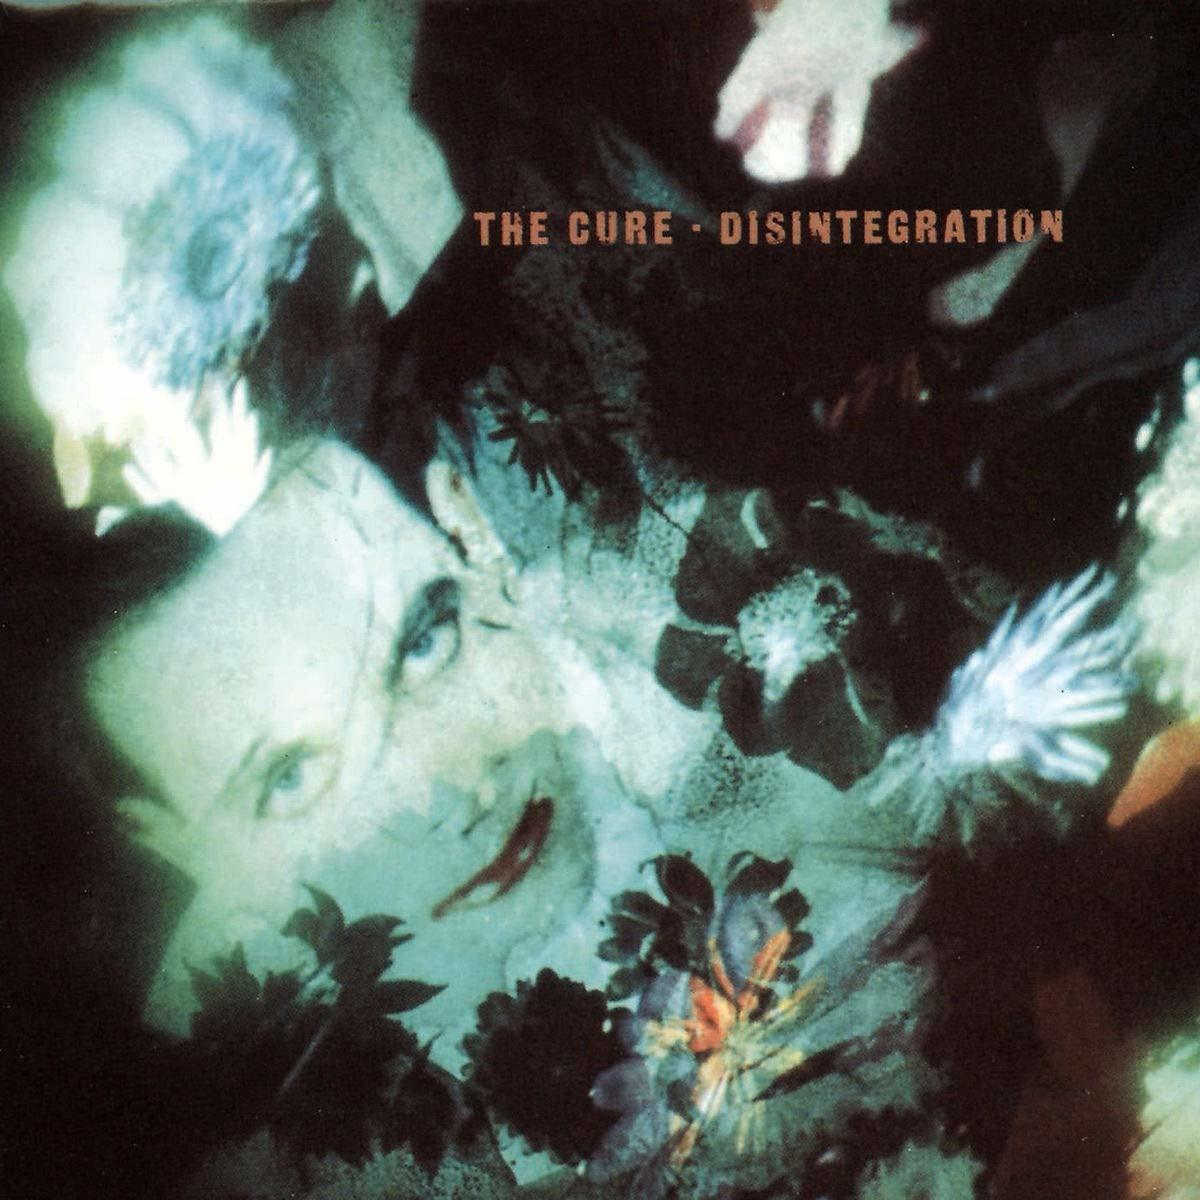 THE CURE Disintegration (Reissue, Remastered, Deluxe Edition) 3CD.jpg